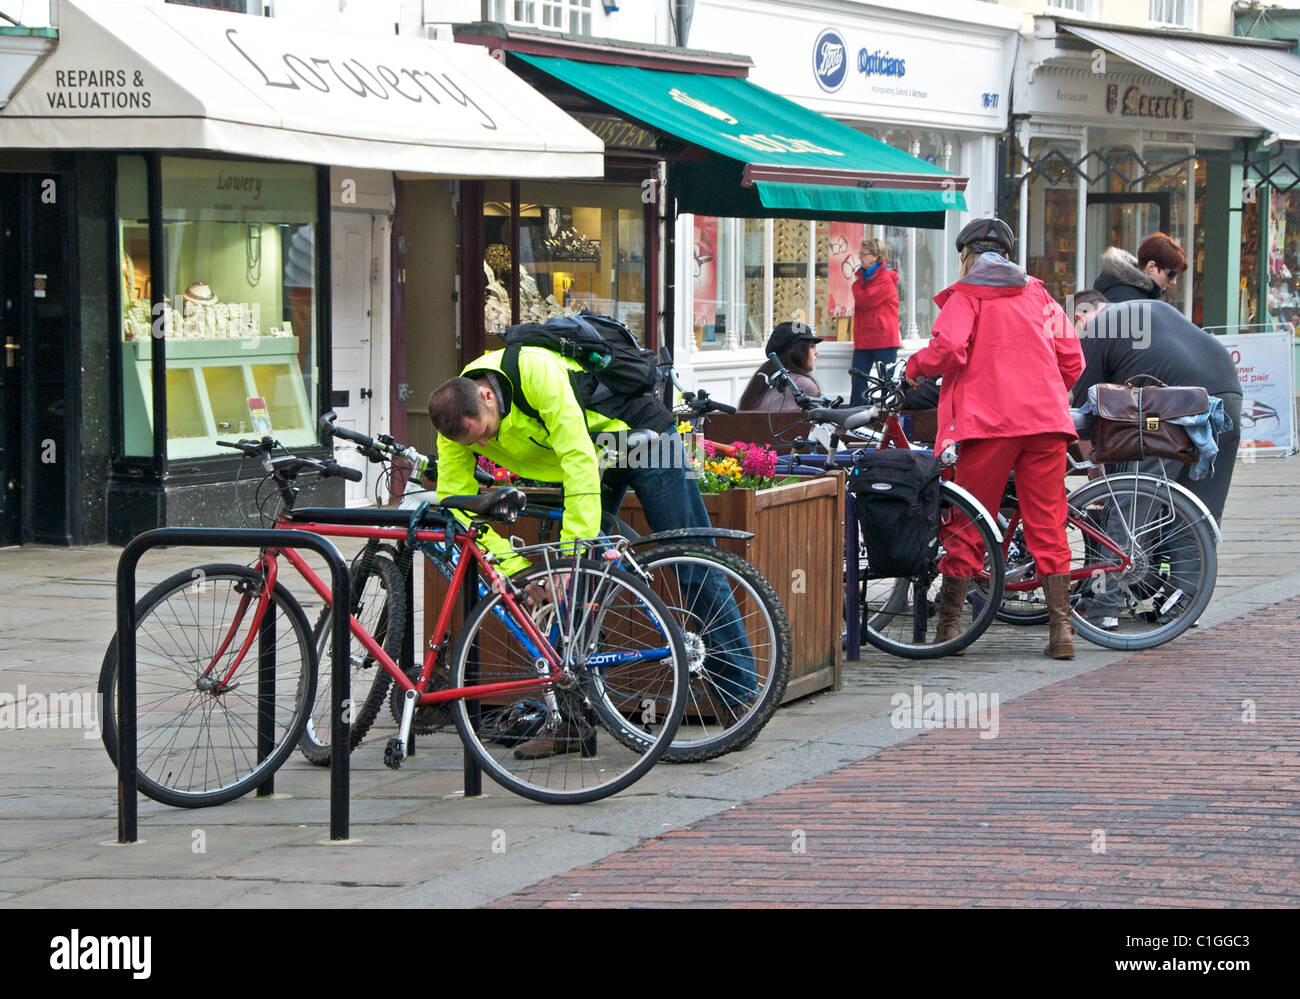 Bike bicycle rack parking in a city centre - this is Chichester in West Sussex. UK - Stock Image